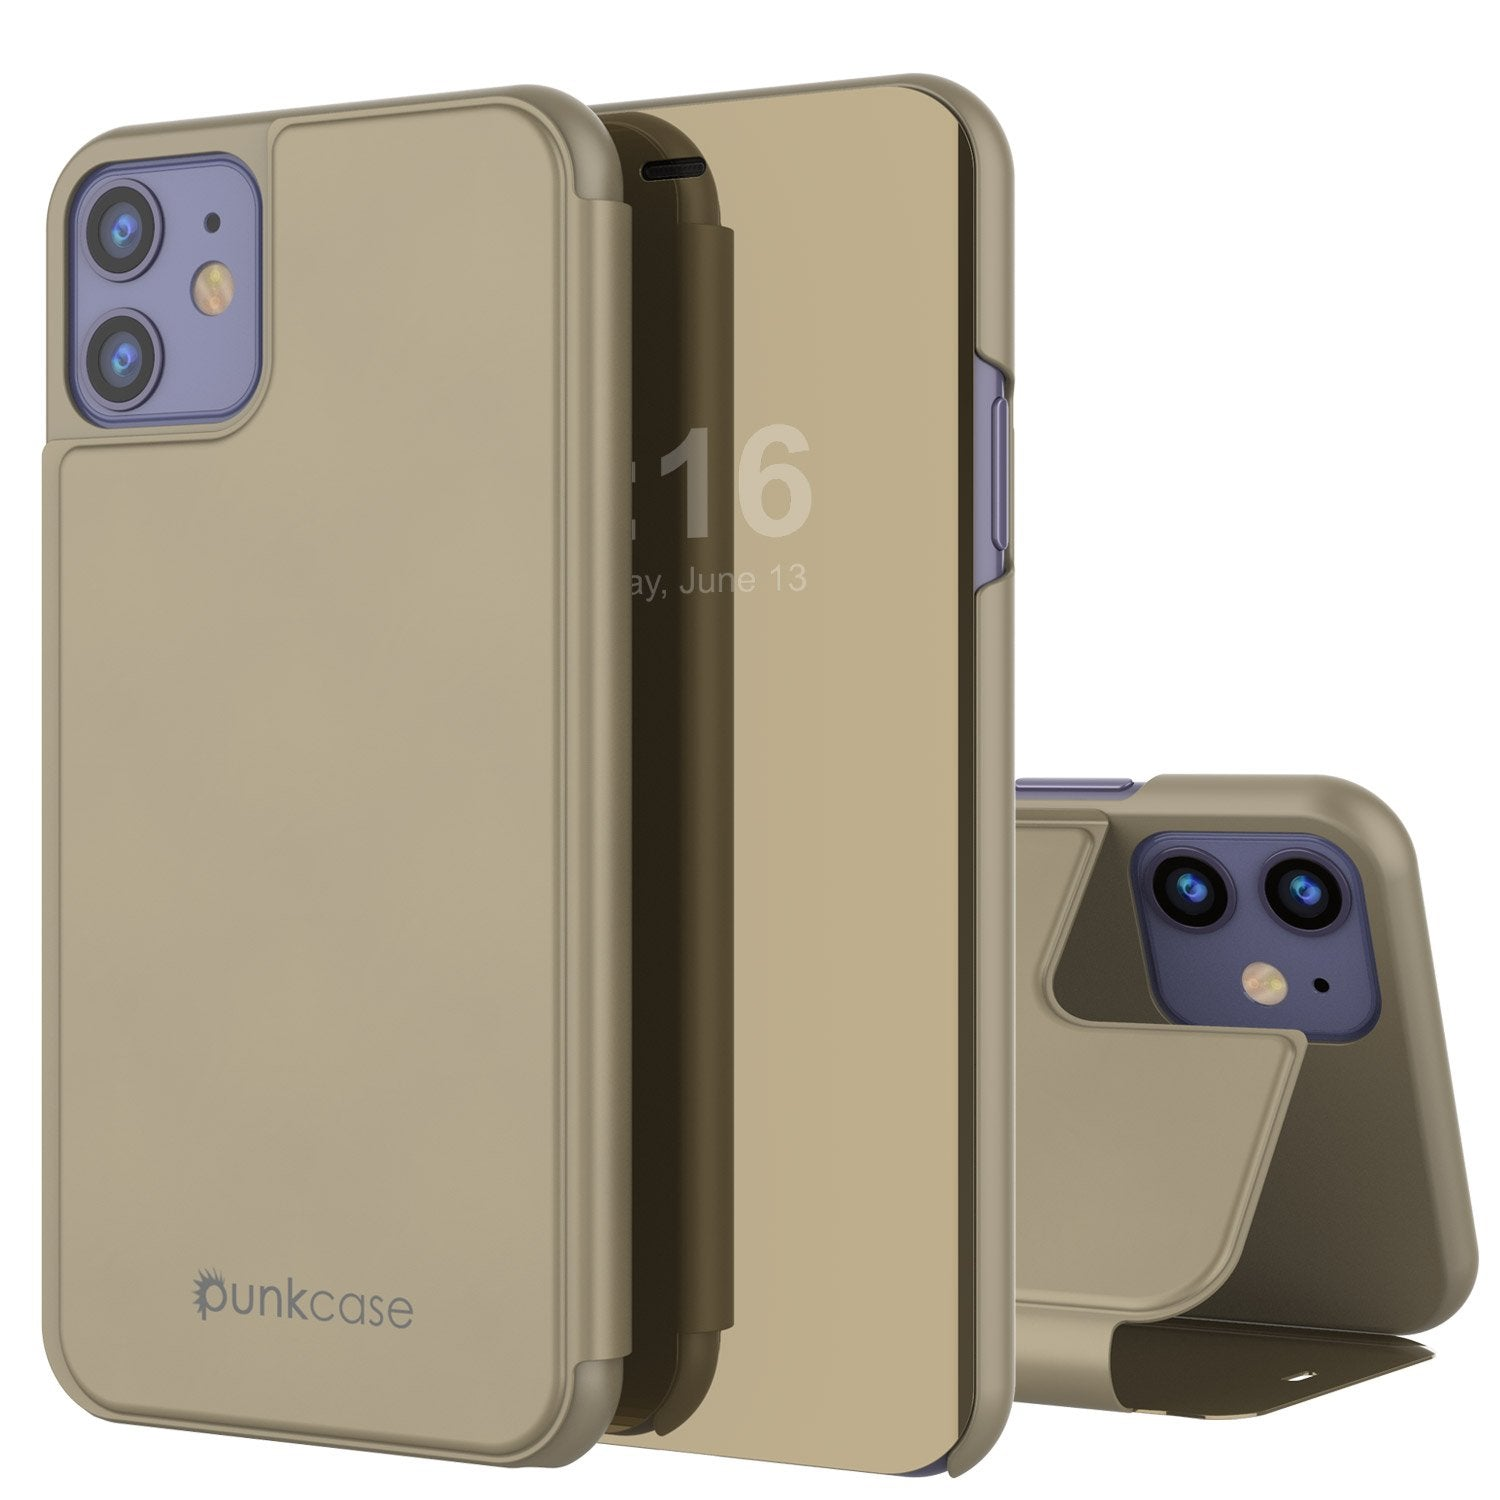 Punkcase iPhone 11 Pro Reflector Case Protective Flip Cover [Gold]